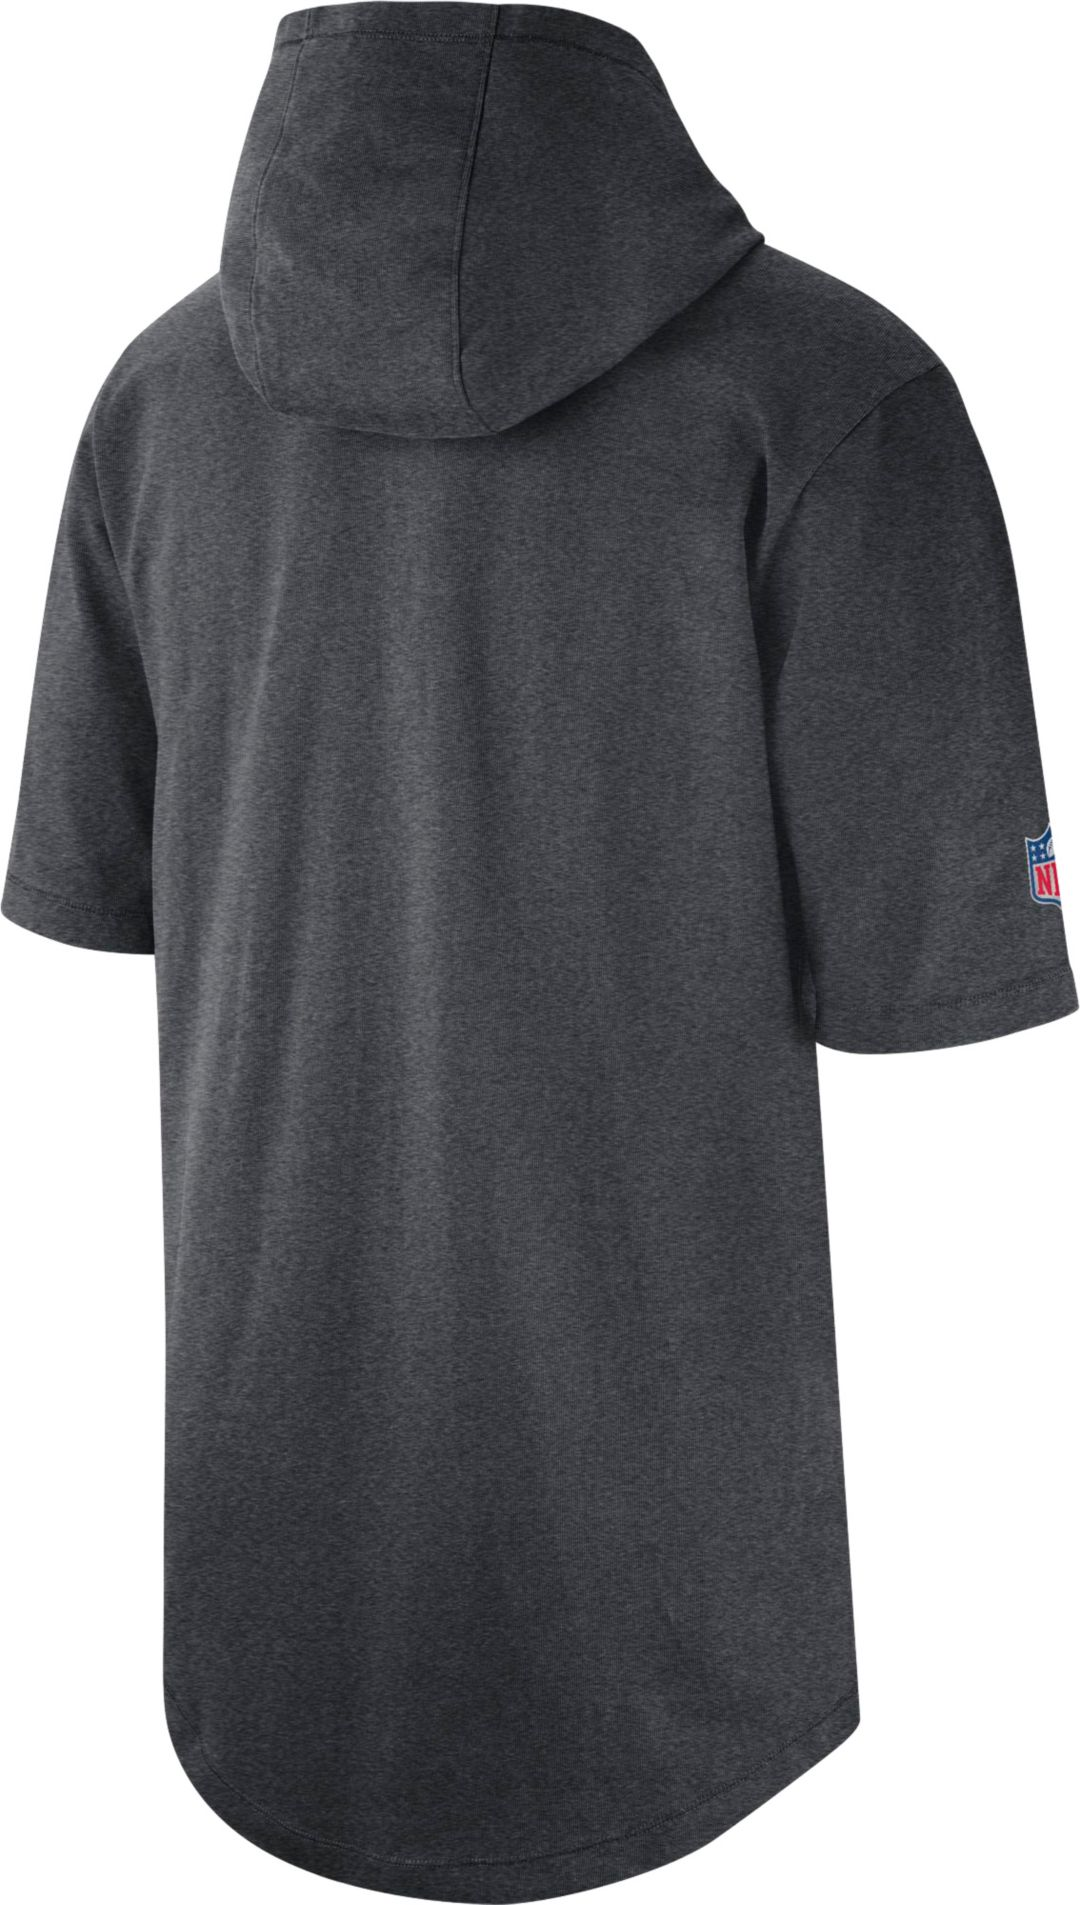 info for 1a743 d3be6 Nike Men's Dallas Cowboys Sideline Charcoal Short-Sleeve Hoodie T-Shirt